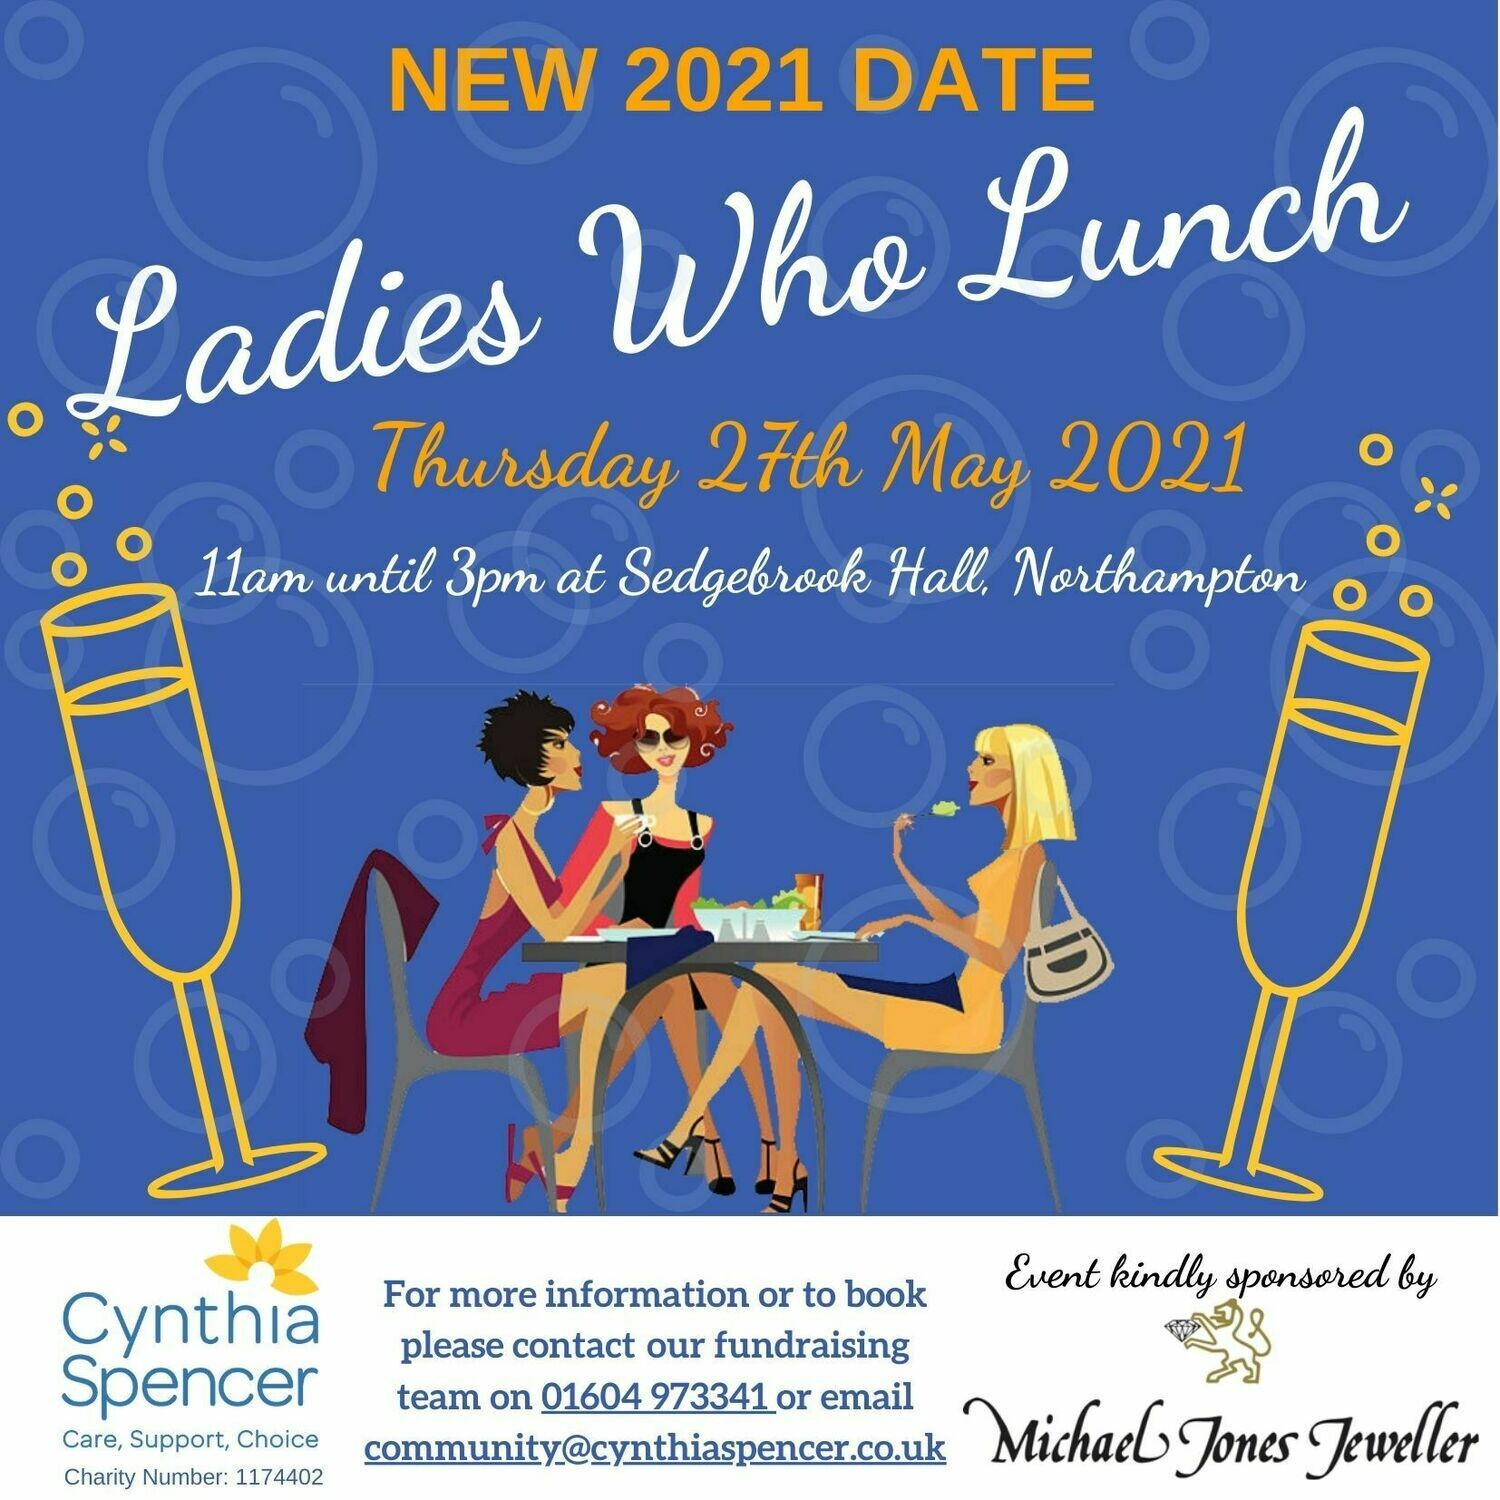 Ladies Who Lunch Event Ticket